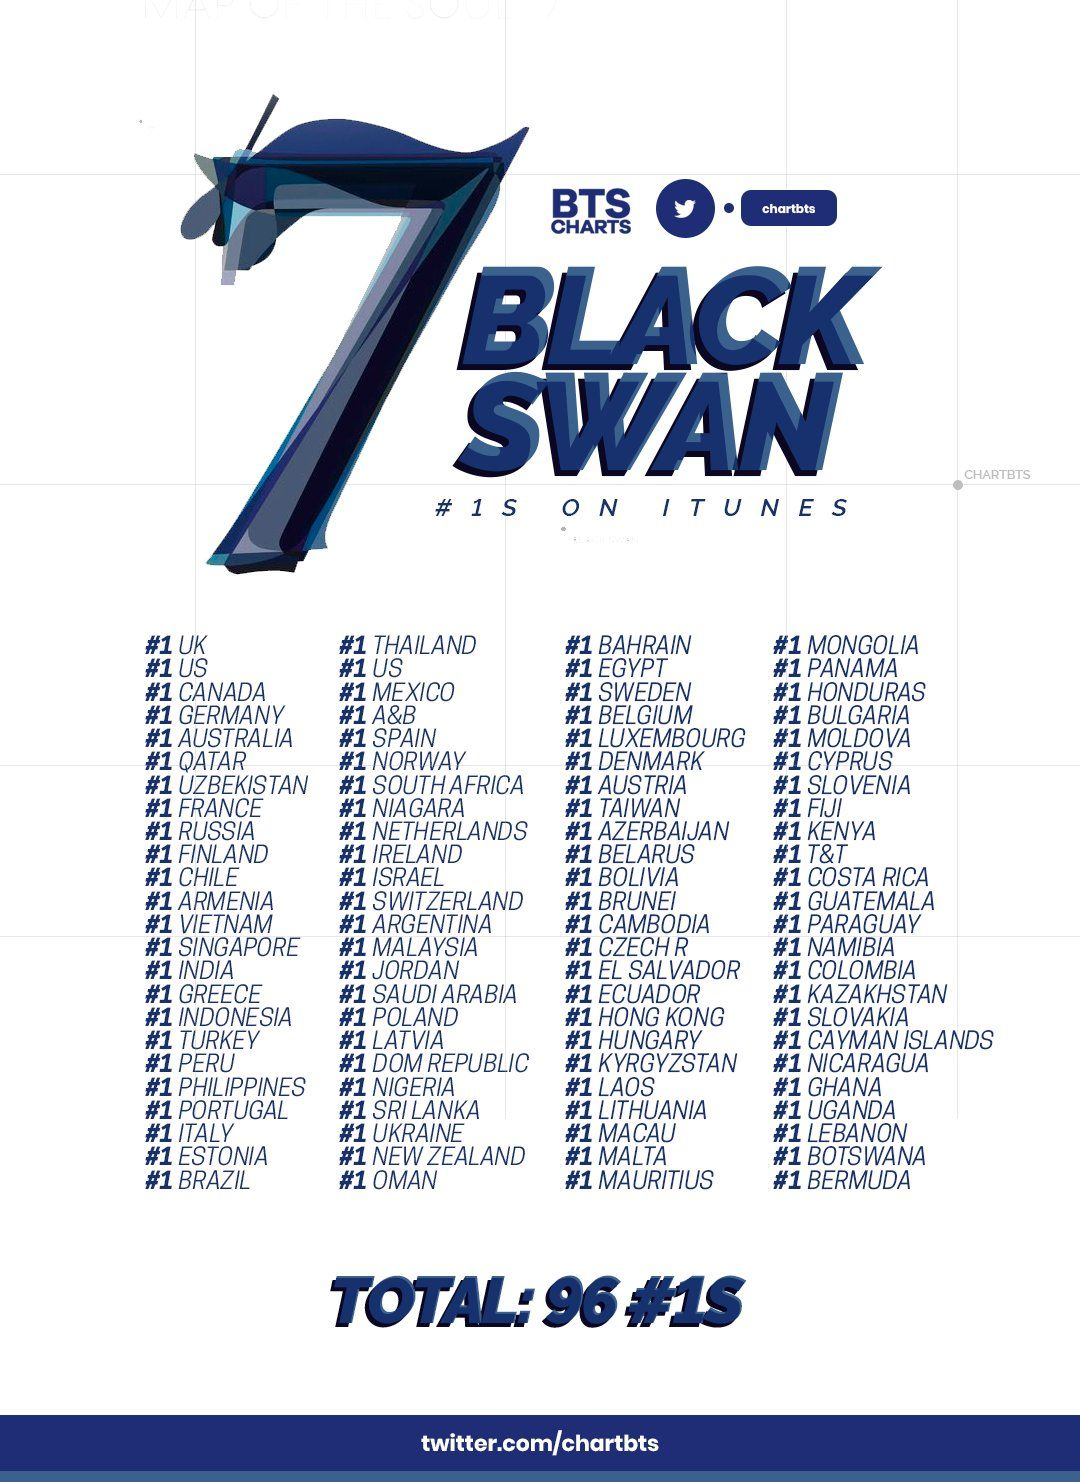 Black Swan By Bts Topped The Itunes Of 96 Countries All Over The World During Its First 24 Hours Bts Itunes Album Songs